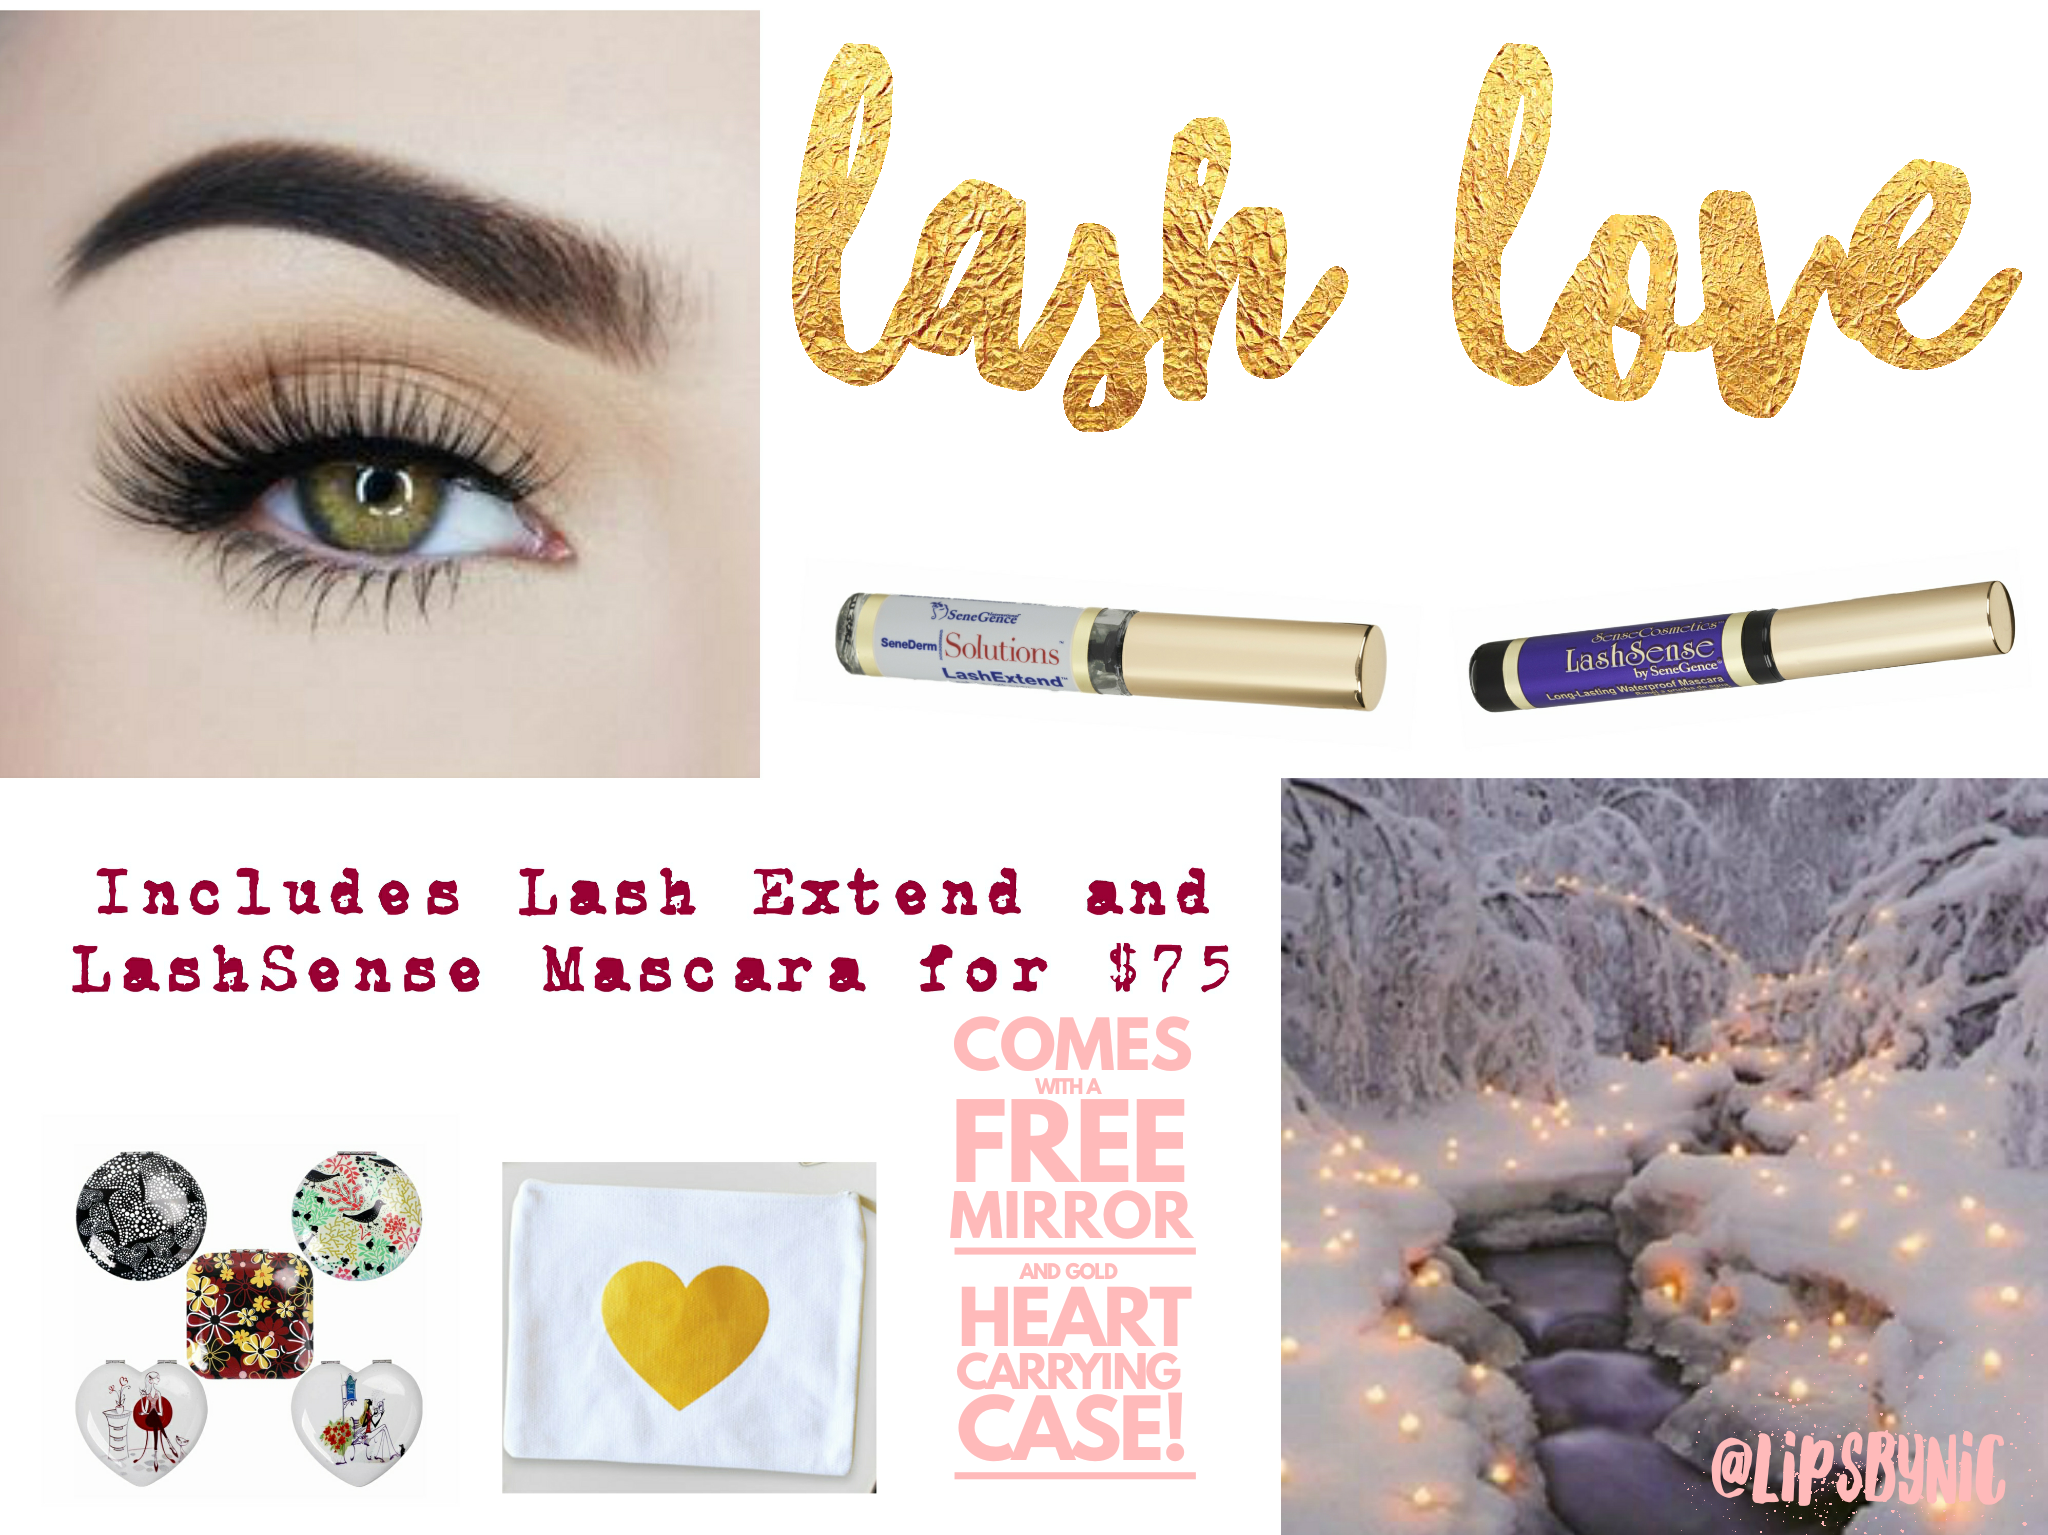 Lash Love Is For Those Who Well, Love Lashes! Includes Lash Extend And  Lashsense